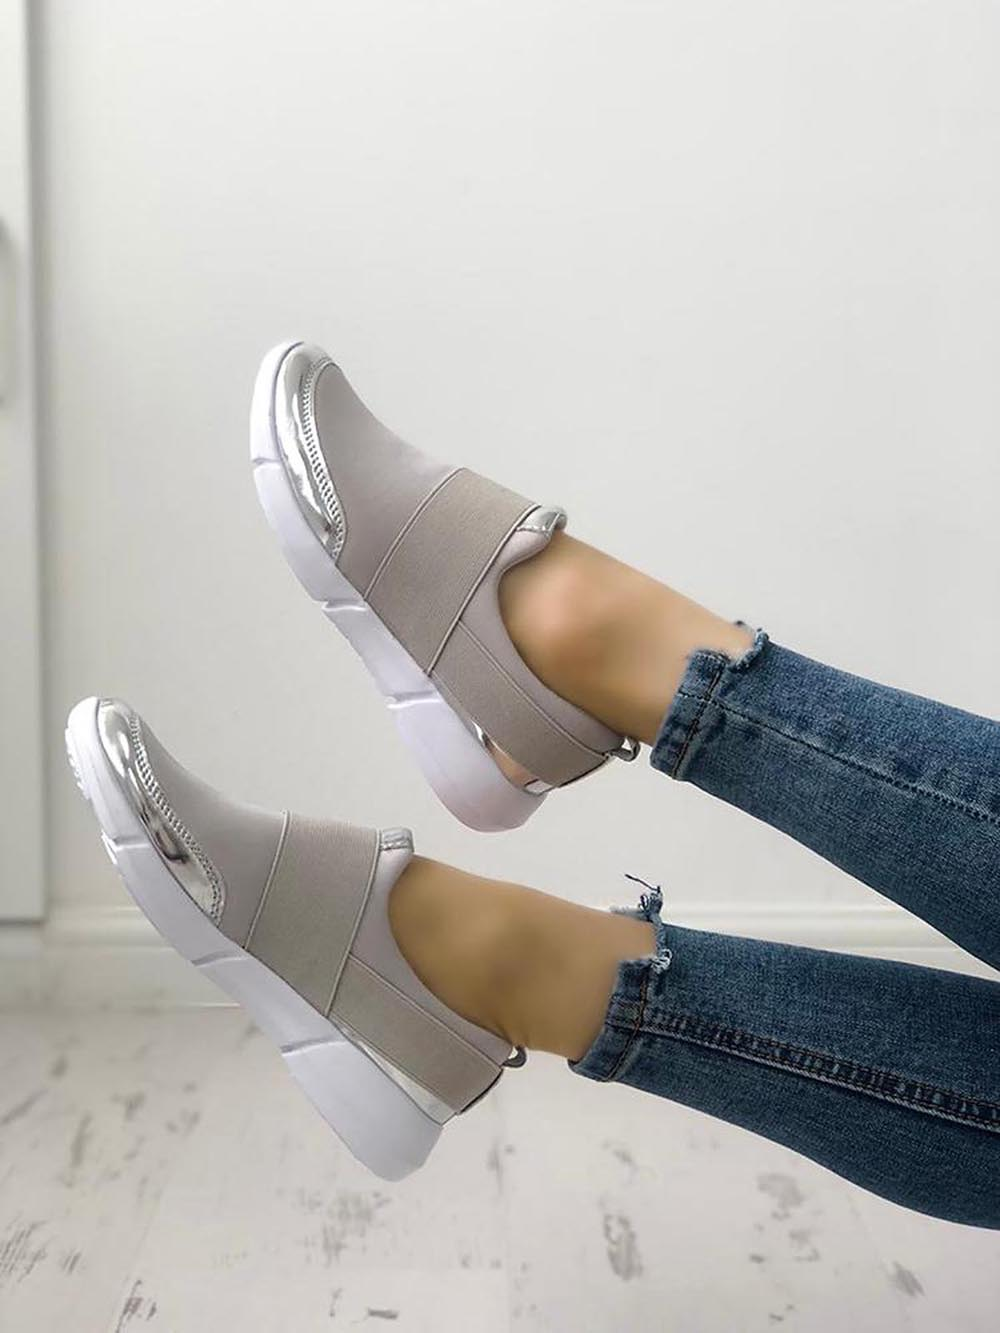 2019 Summer Women Flat Shoes Metal Color Splice Breathble Casual Shoes Pu leather Platform Loafers Slip Ons Soft Fashion New D25 in Women 39 s Flats from Shoes